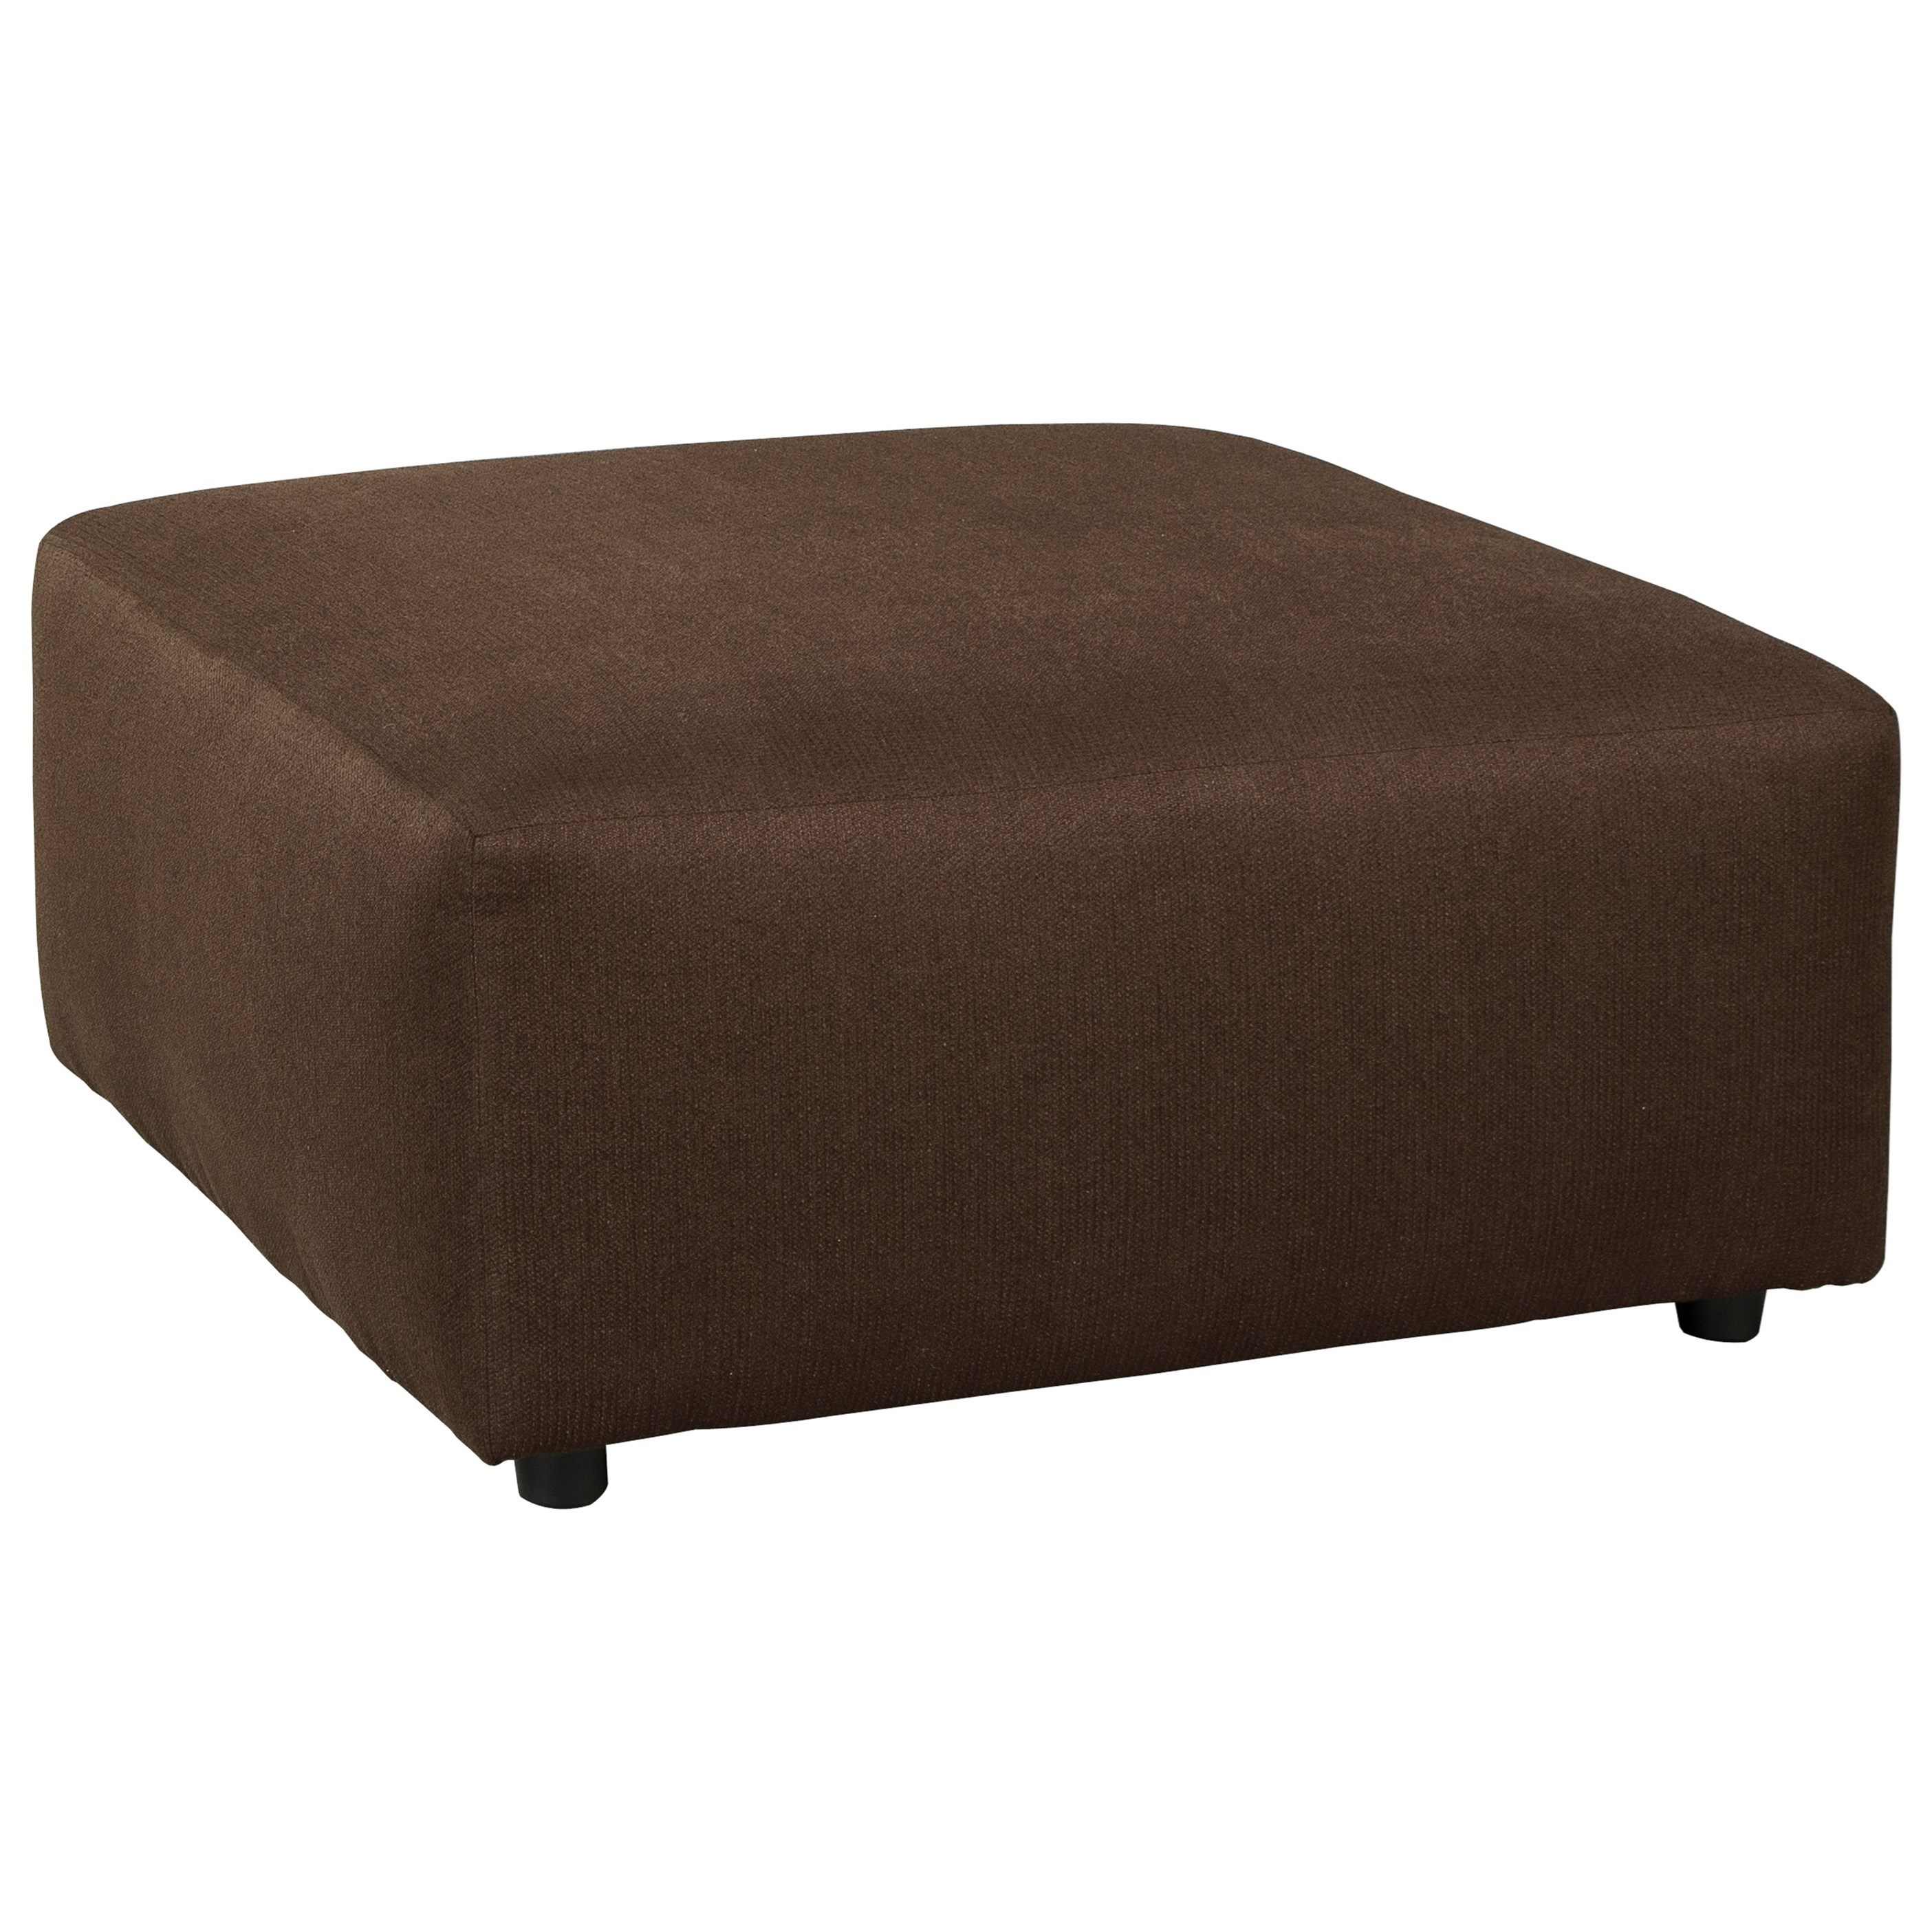 Signature Design by Ashley Jayceon Oversized Accent Ottoman - Item Number: 6490408